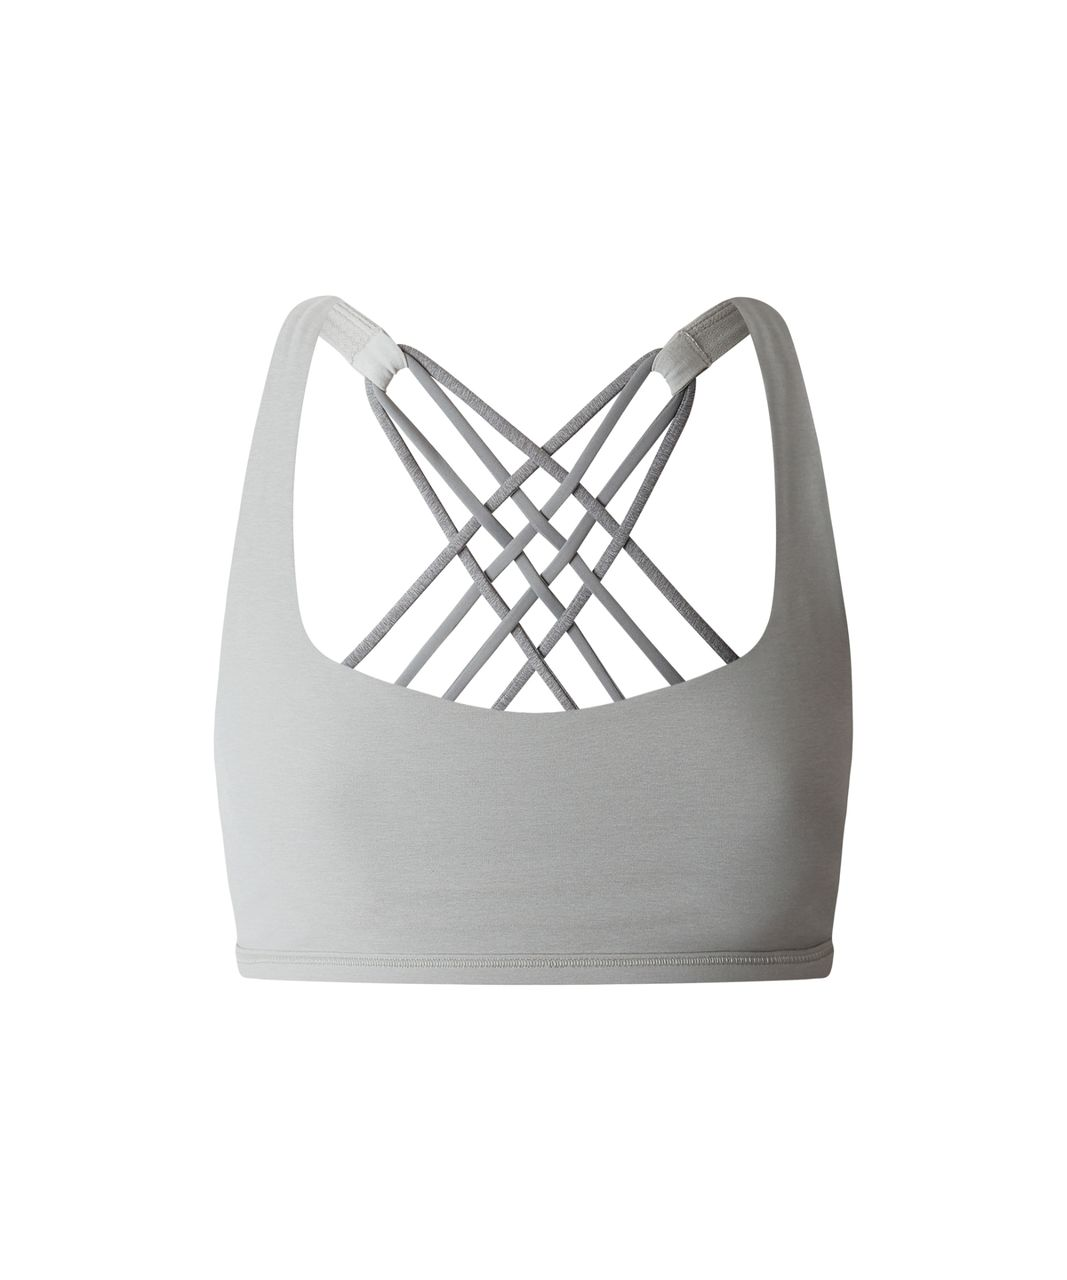 Lululemon Free To Be Bra (Wild) - Heathered Seal Grey / Heathered Battleship / Battleship